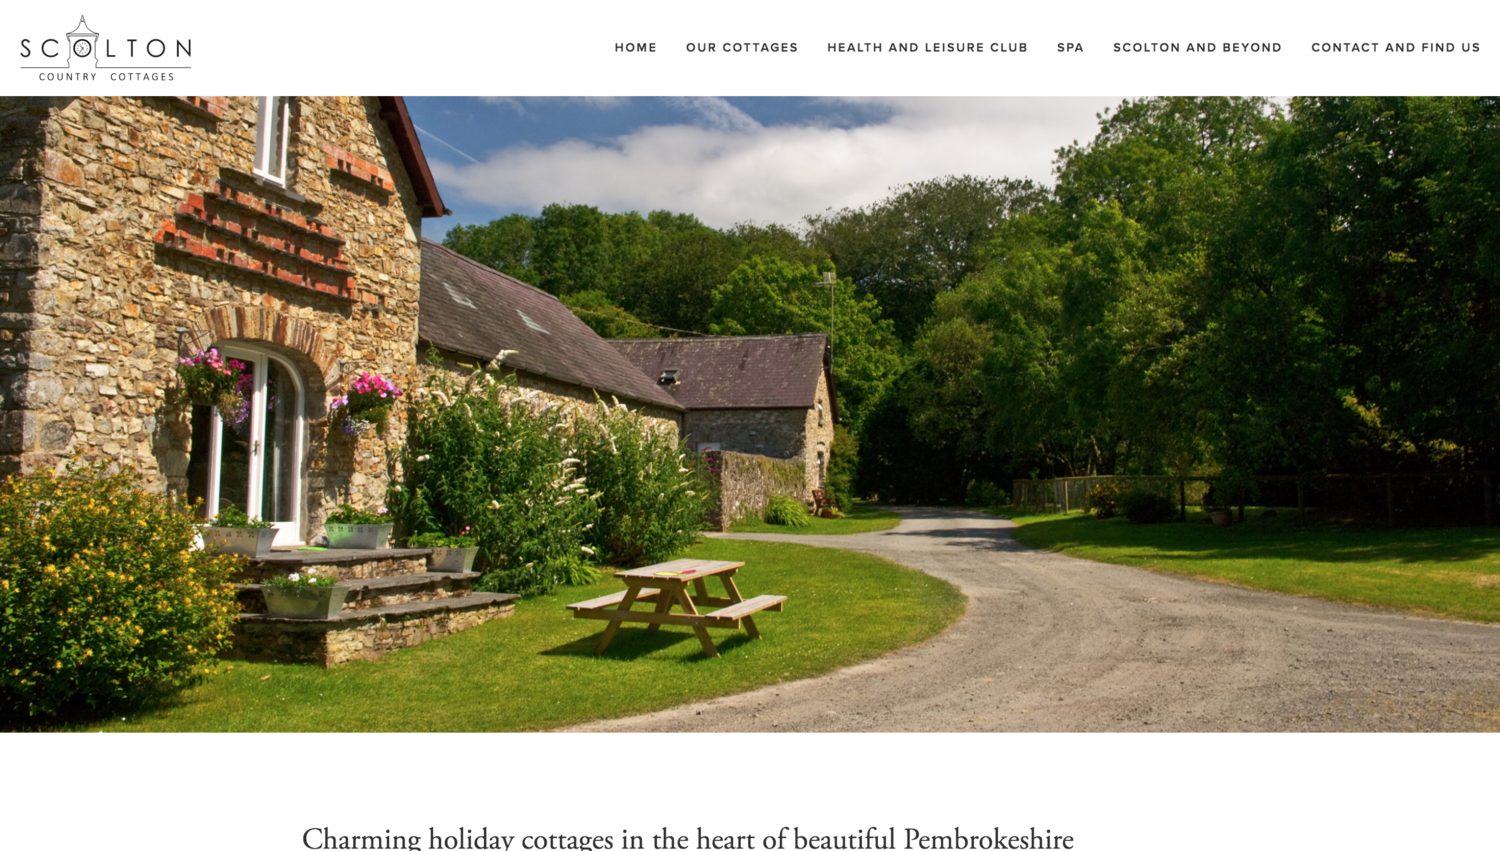 Health and Leisure Club — Scolton Country Cottages